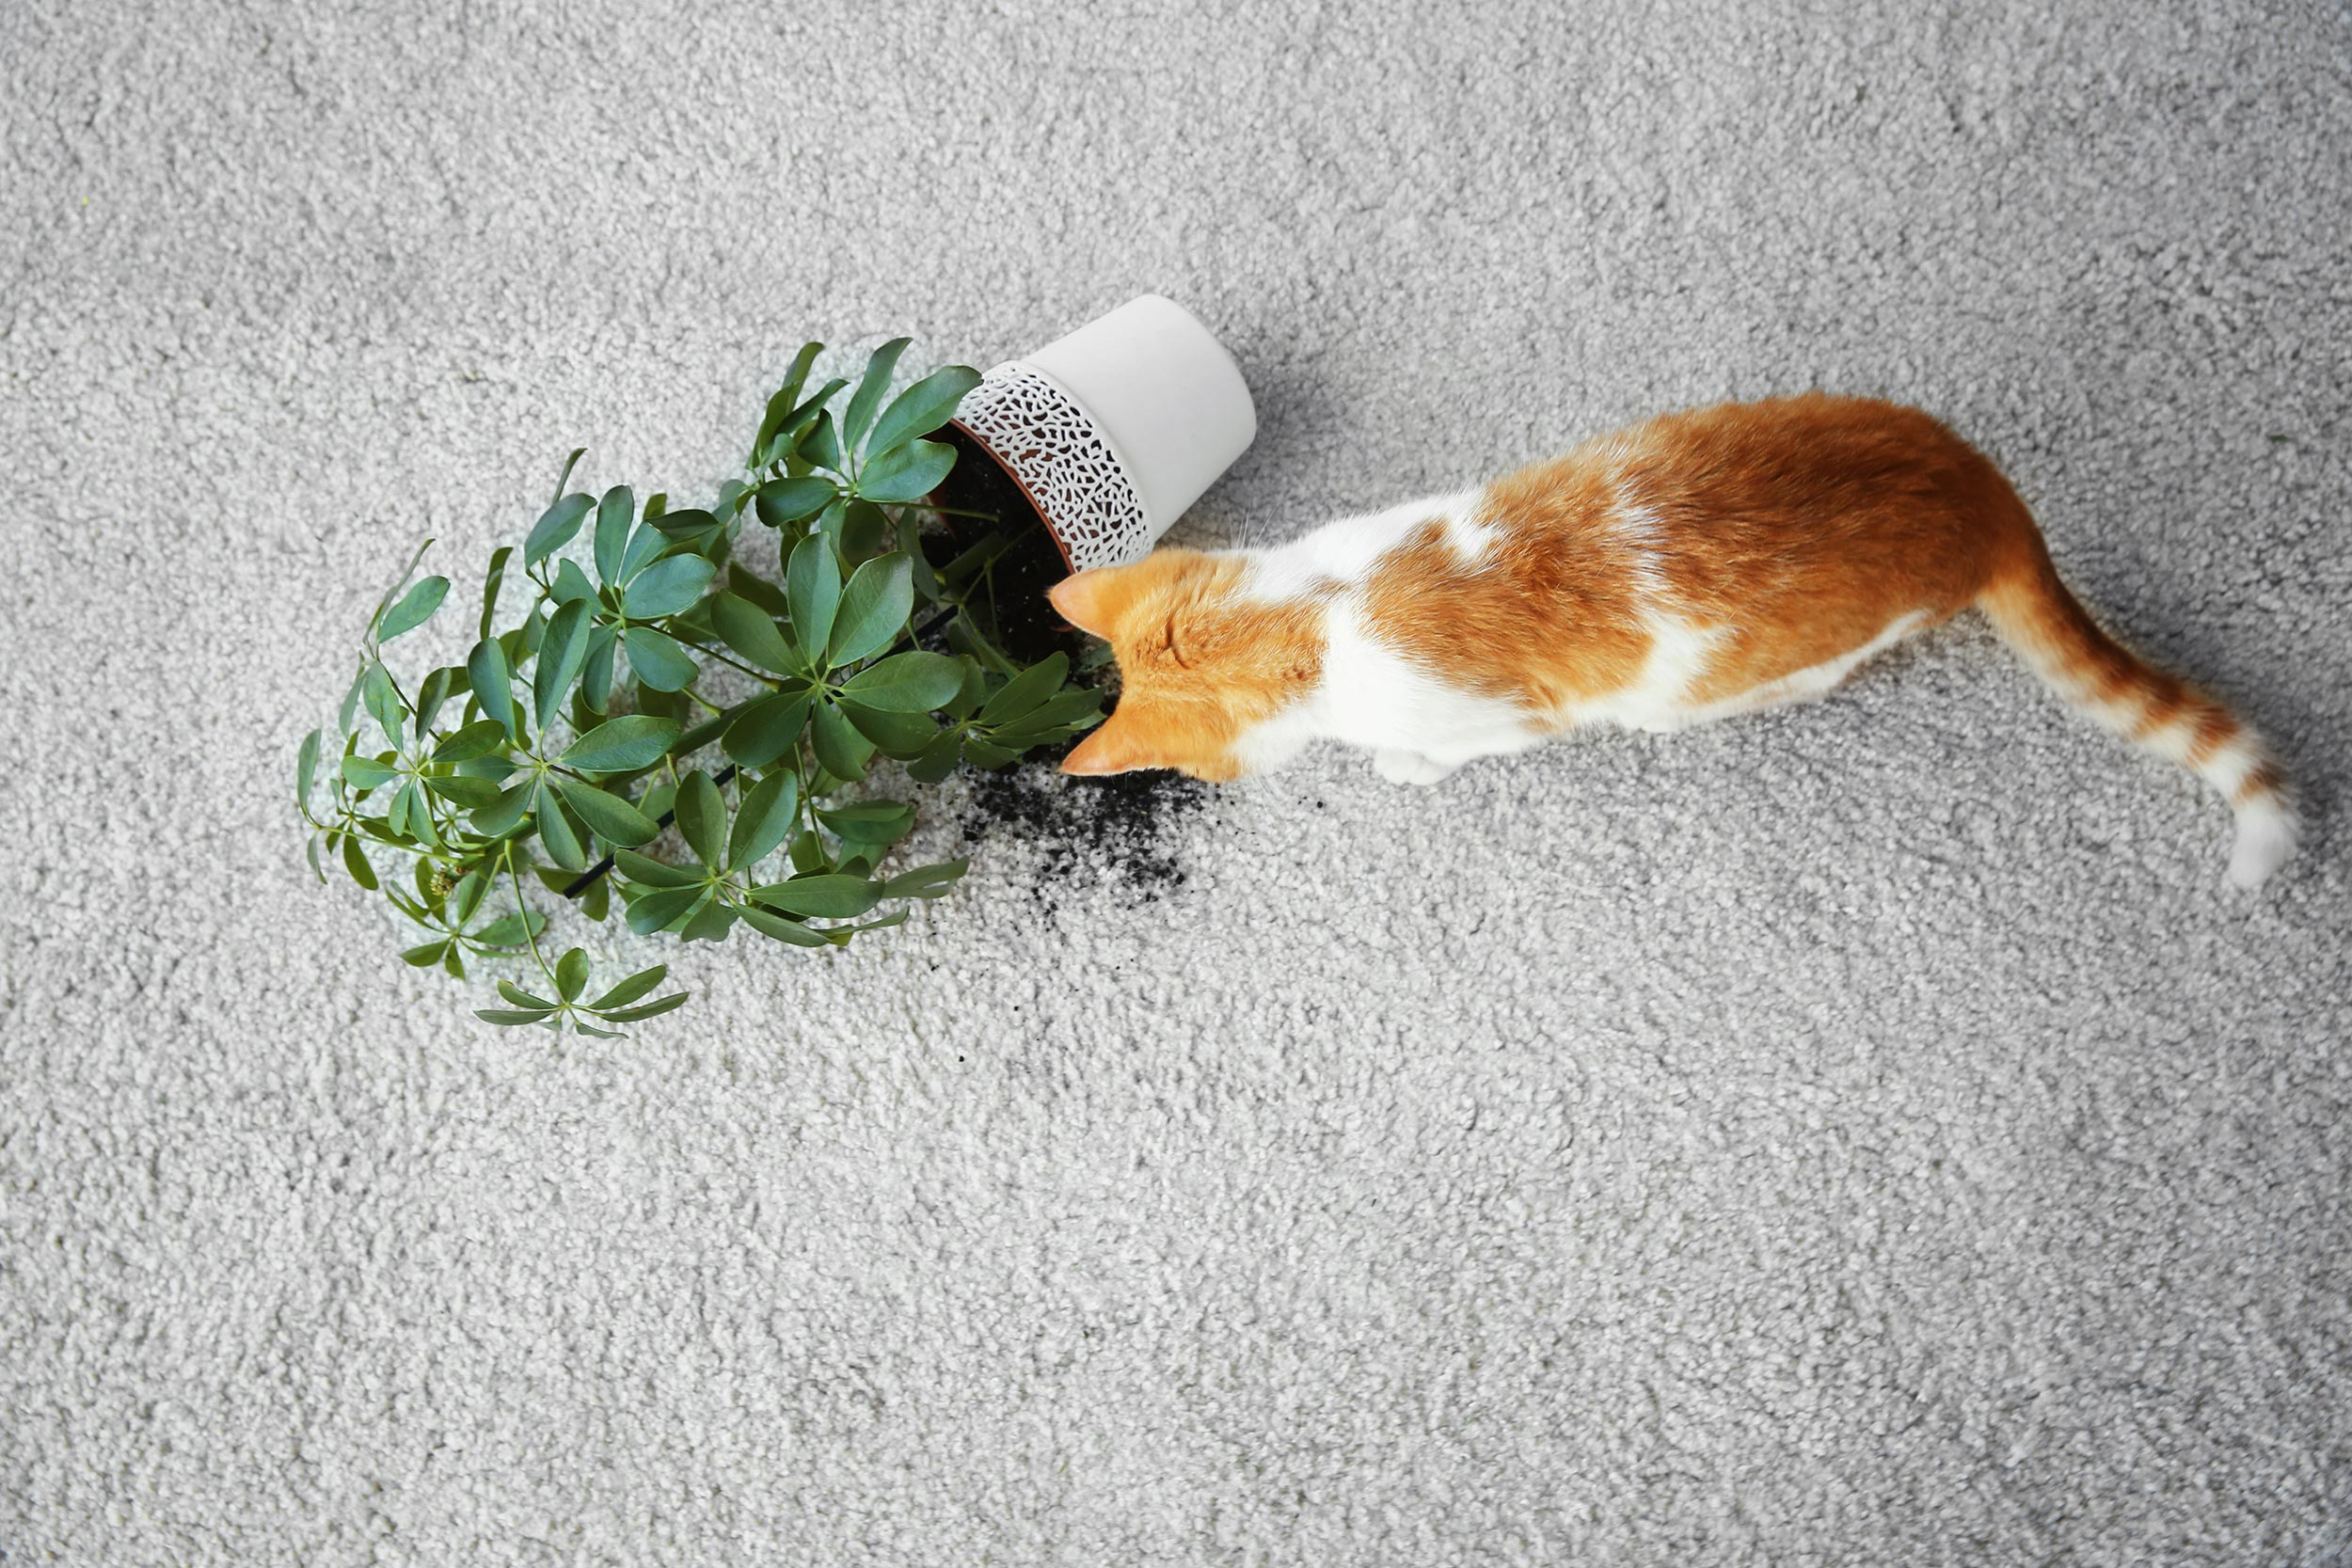 A cat next to a broken jar with a plant on the ground